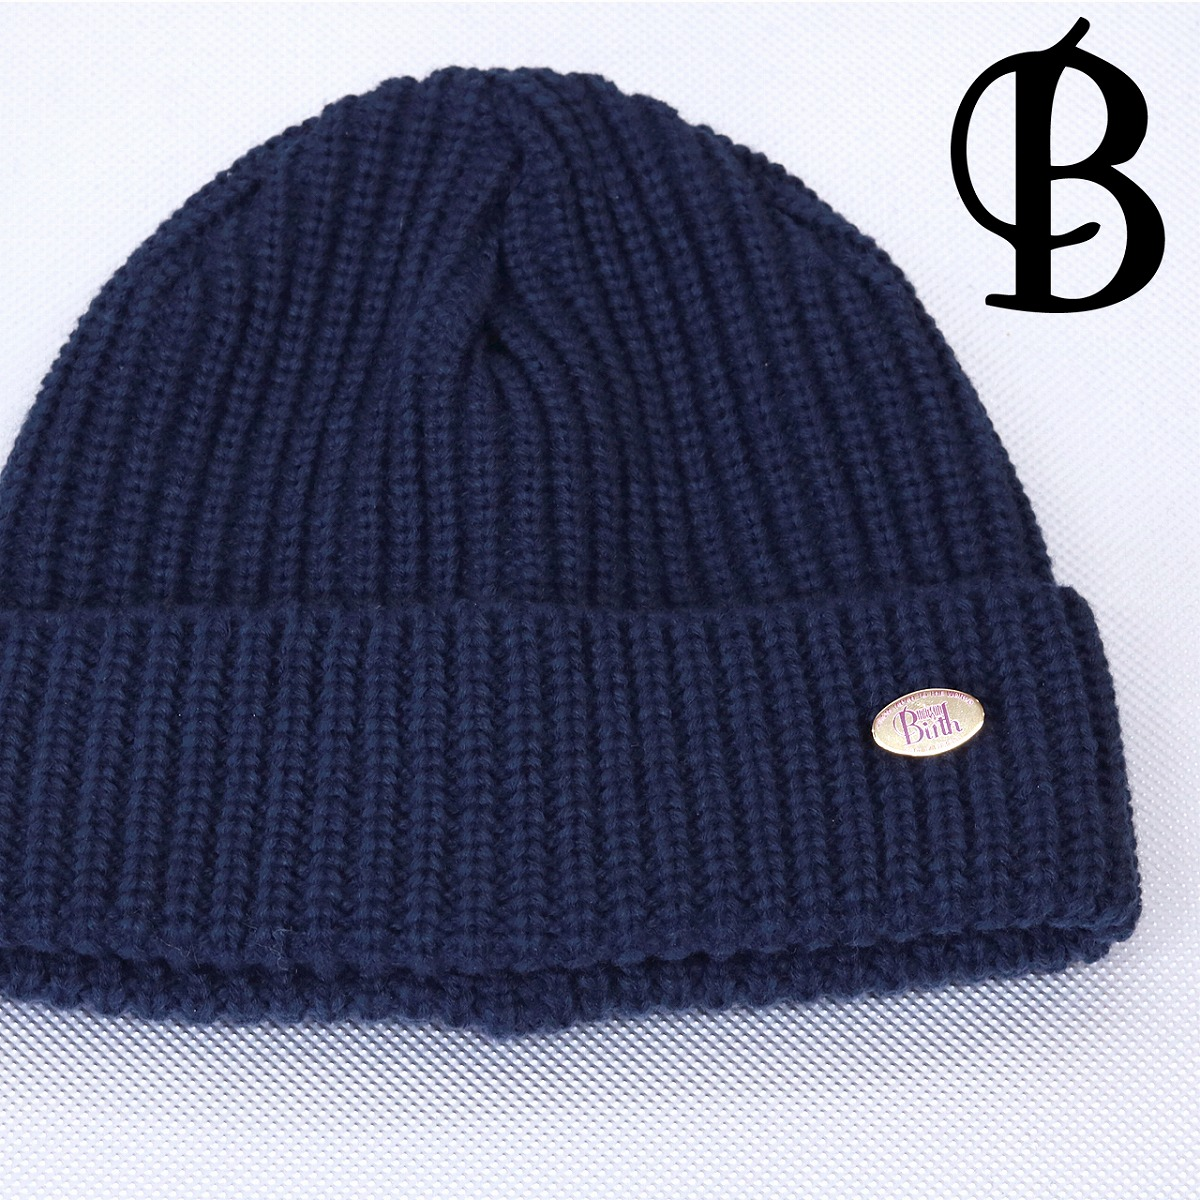 393f7252e Casual / dark blue navy [beanie cap] with the maison birth ニットワッチレディースニット  hat Shin pull plain fabric beanie lapel knit fashion adjustable size casual  ...